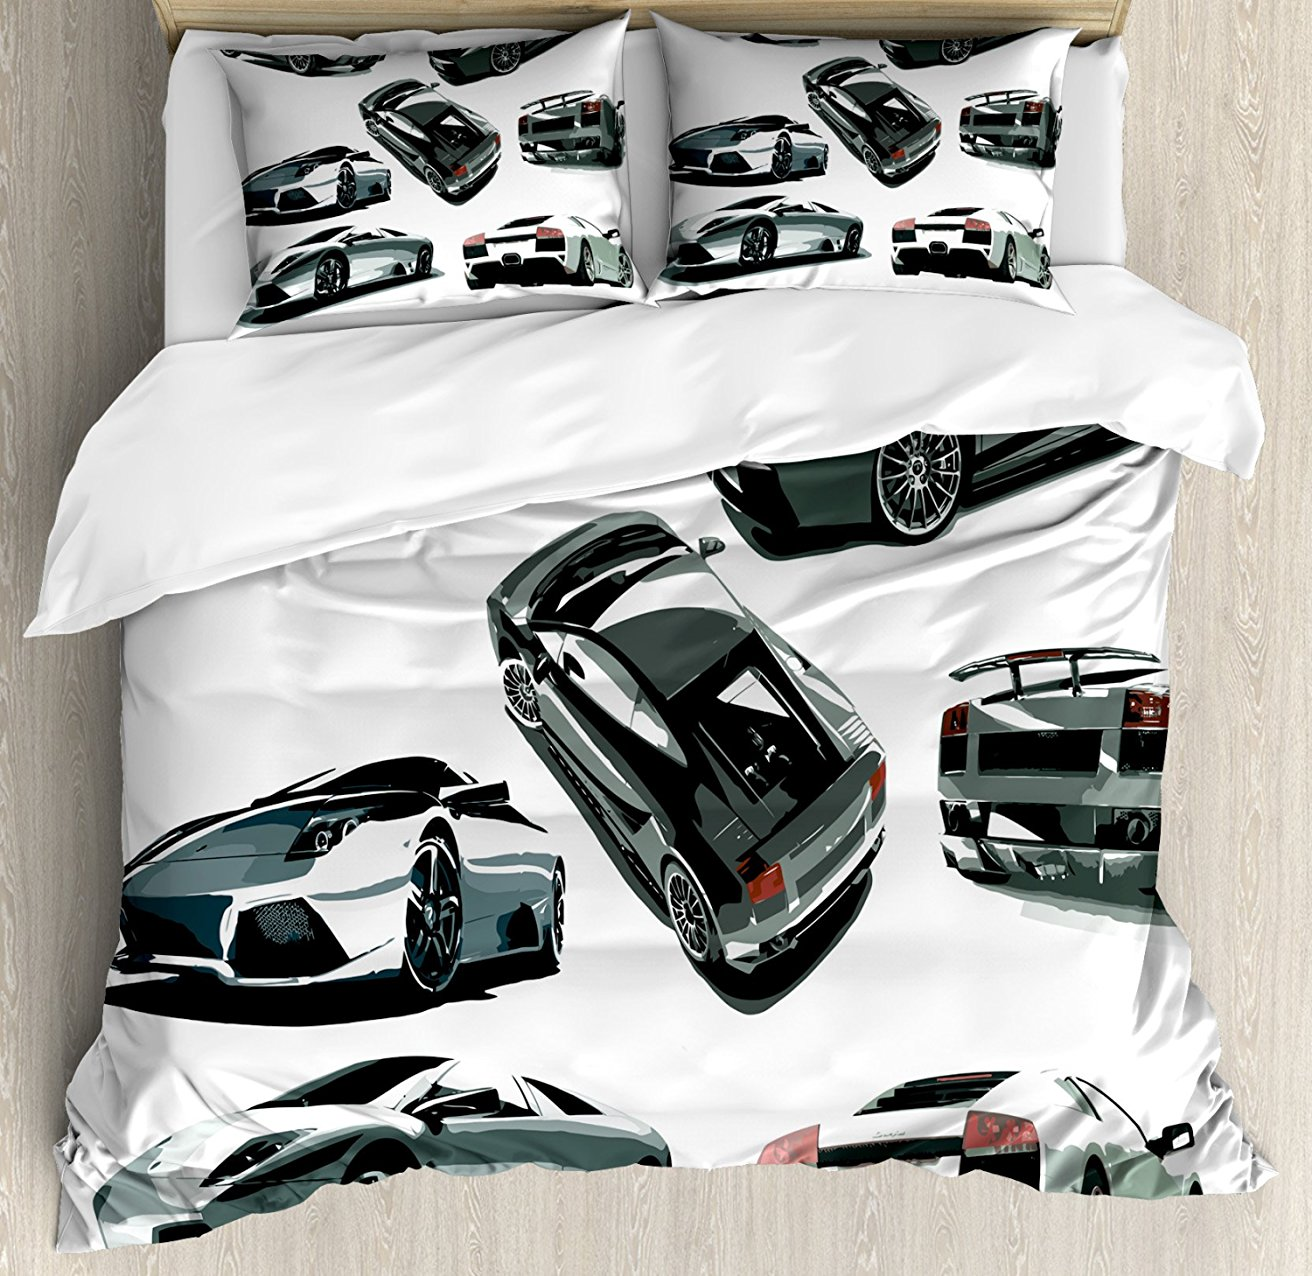 Modern Duvet Cover Set Grey Cars From Various Angles Automobile Industry Theme Vehicle Decorative 4 Piece Bedding Set White